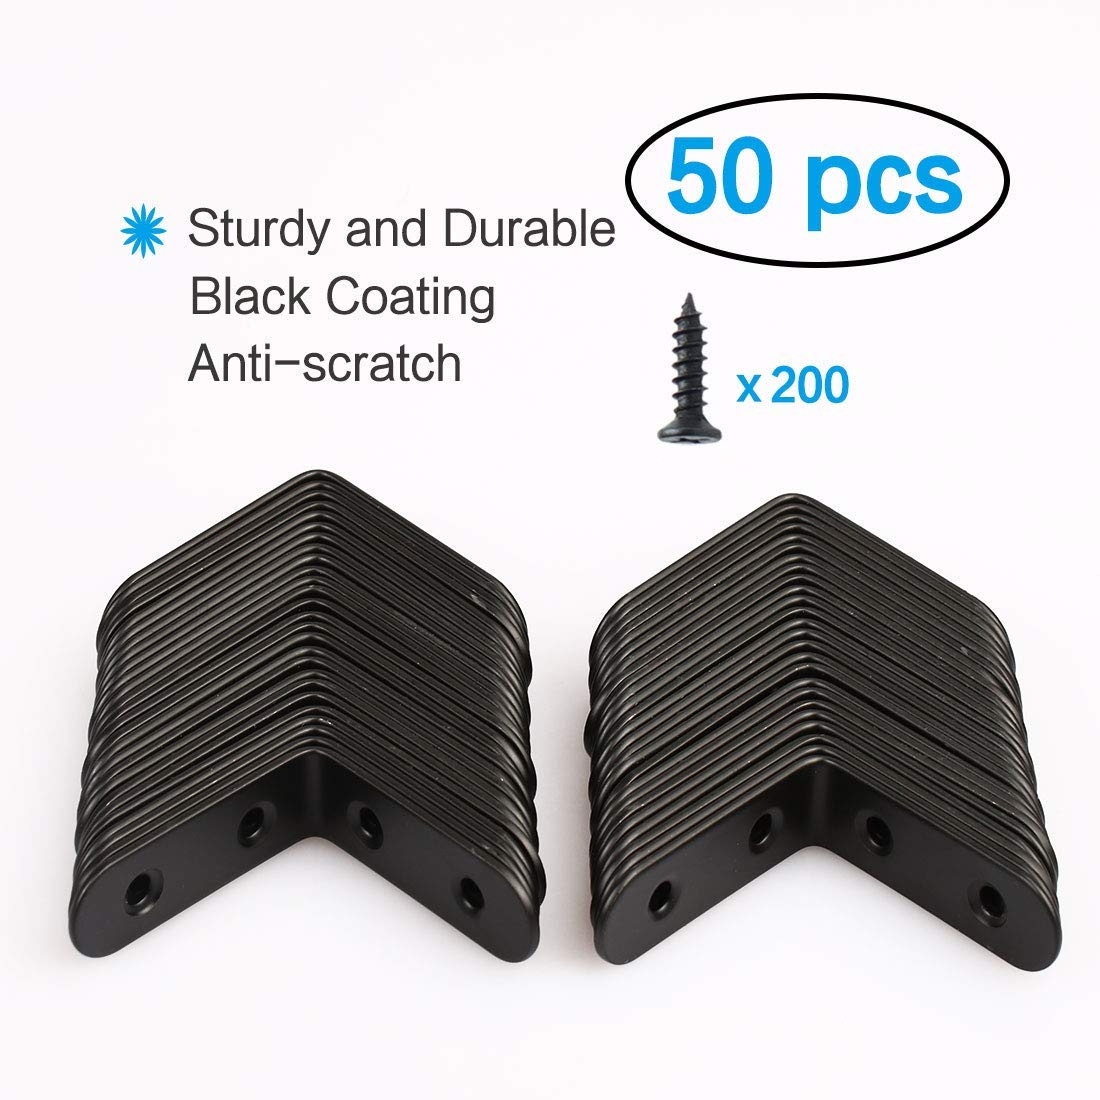 Amazon.com: ZCHXD 50pcs Angle Bracket Stainless Steel ...